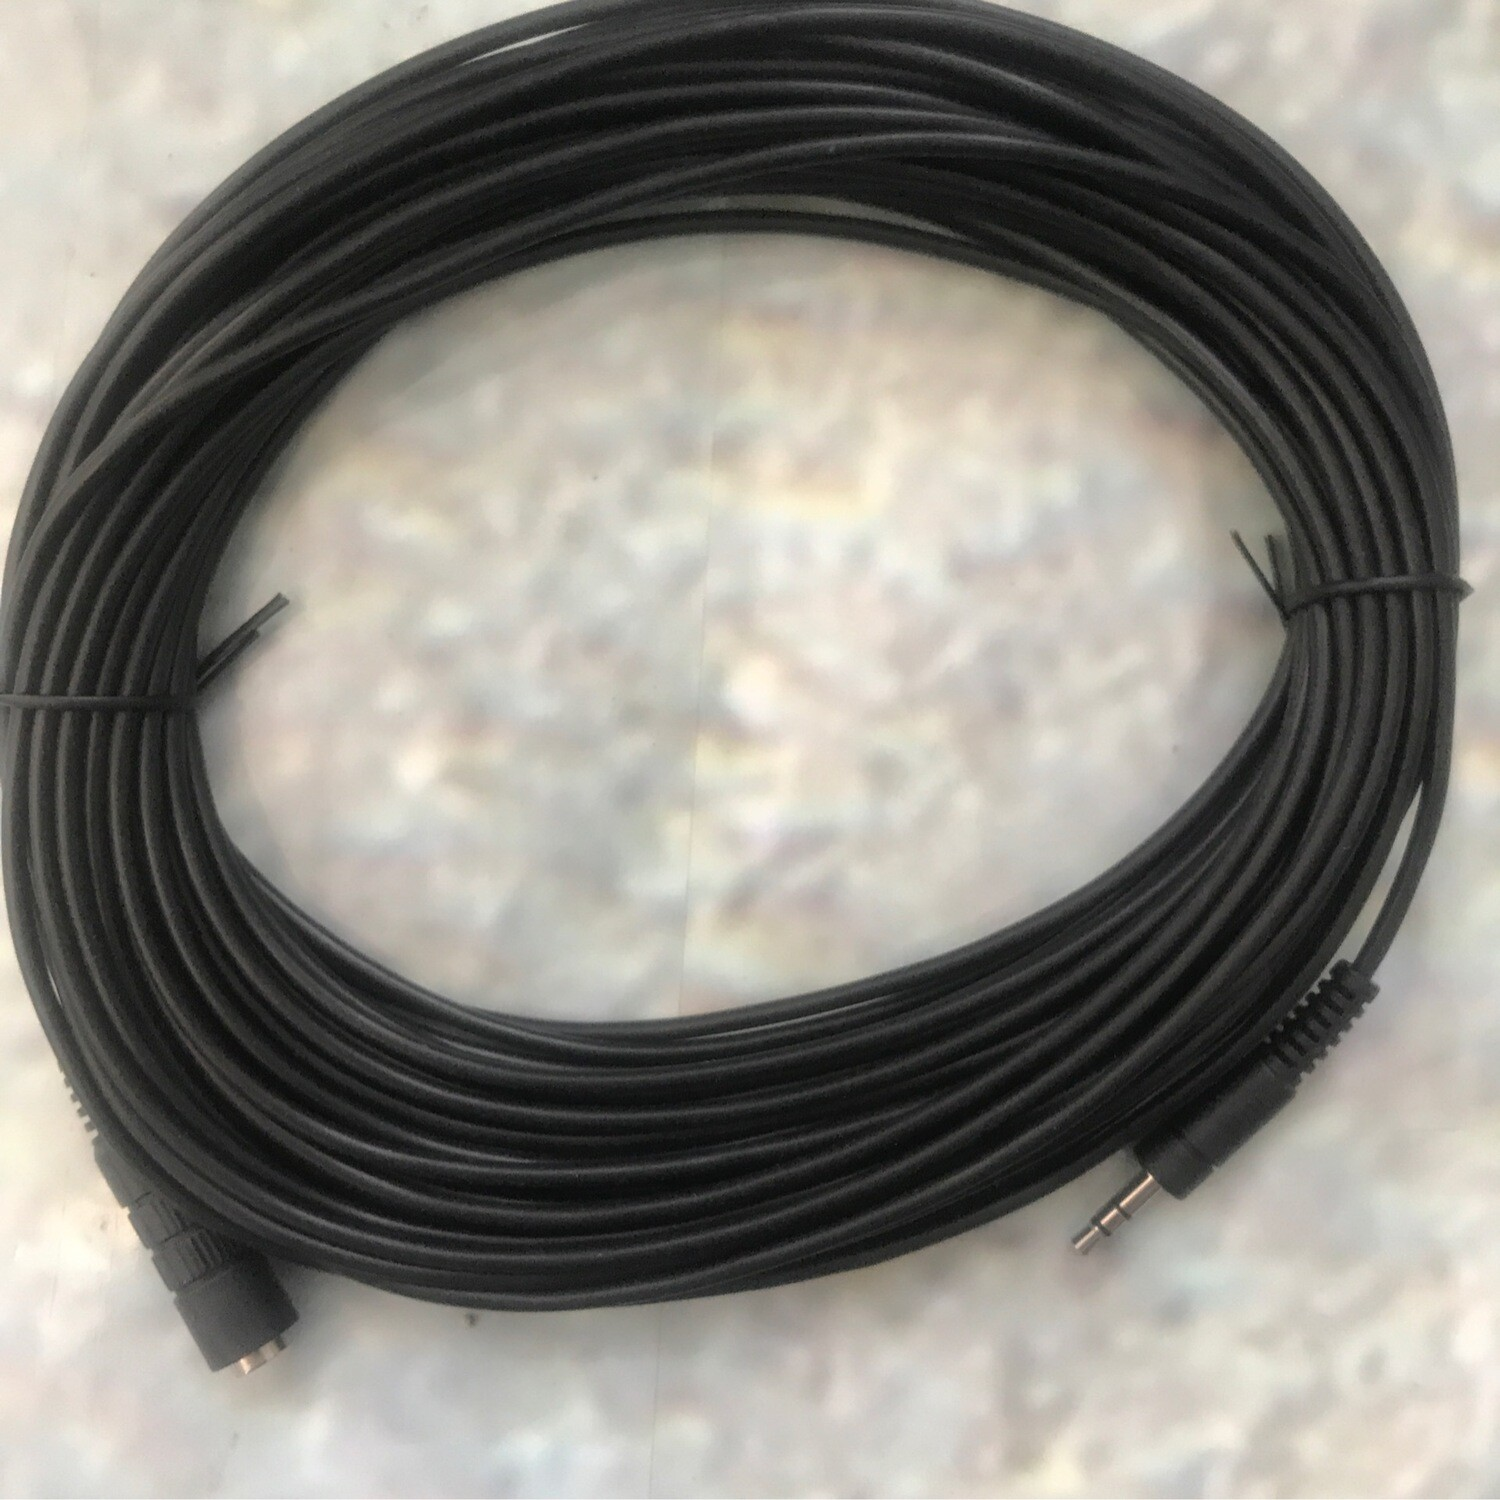 0-10v Cable Extension 30'